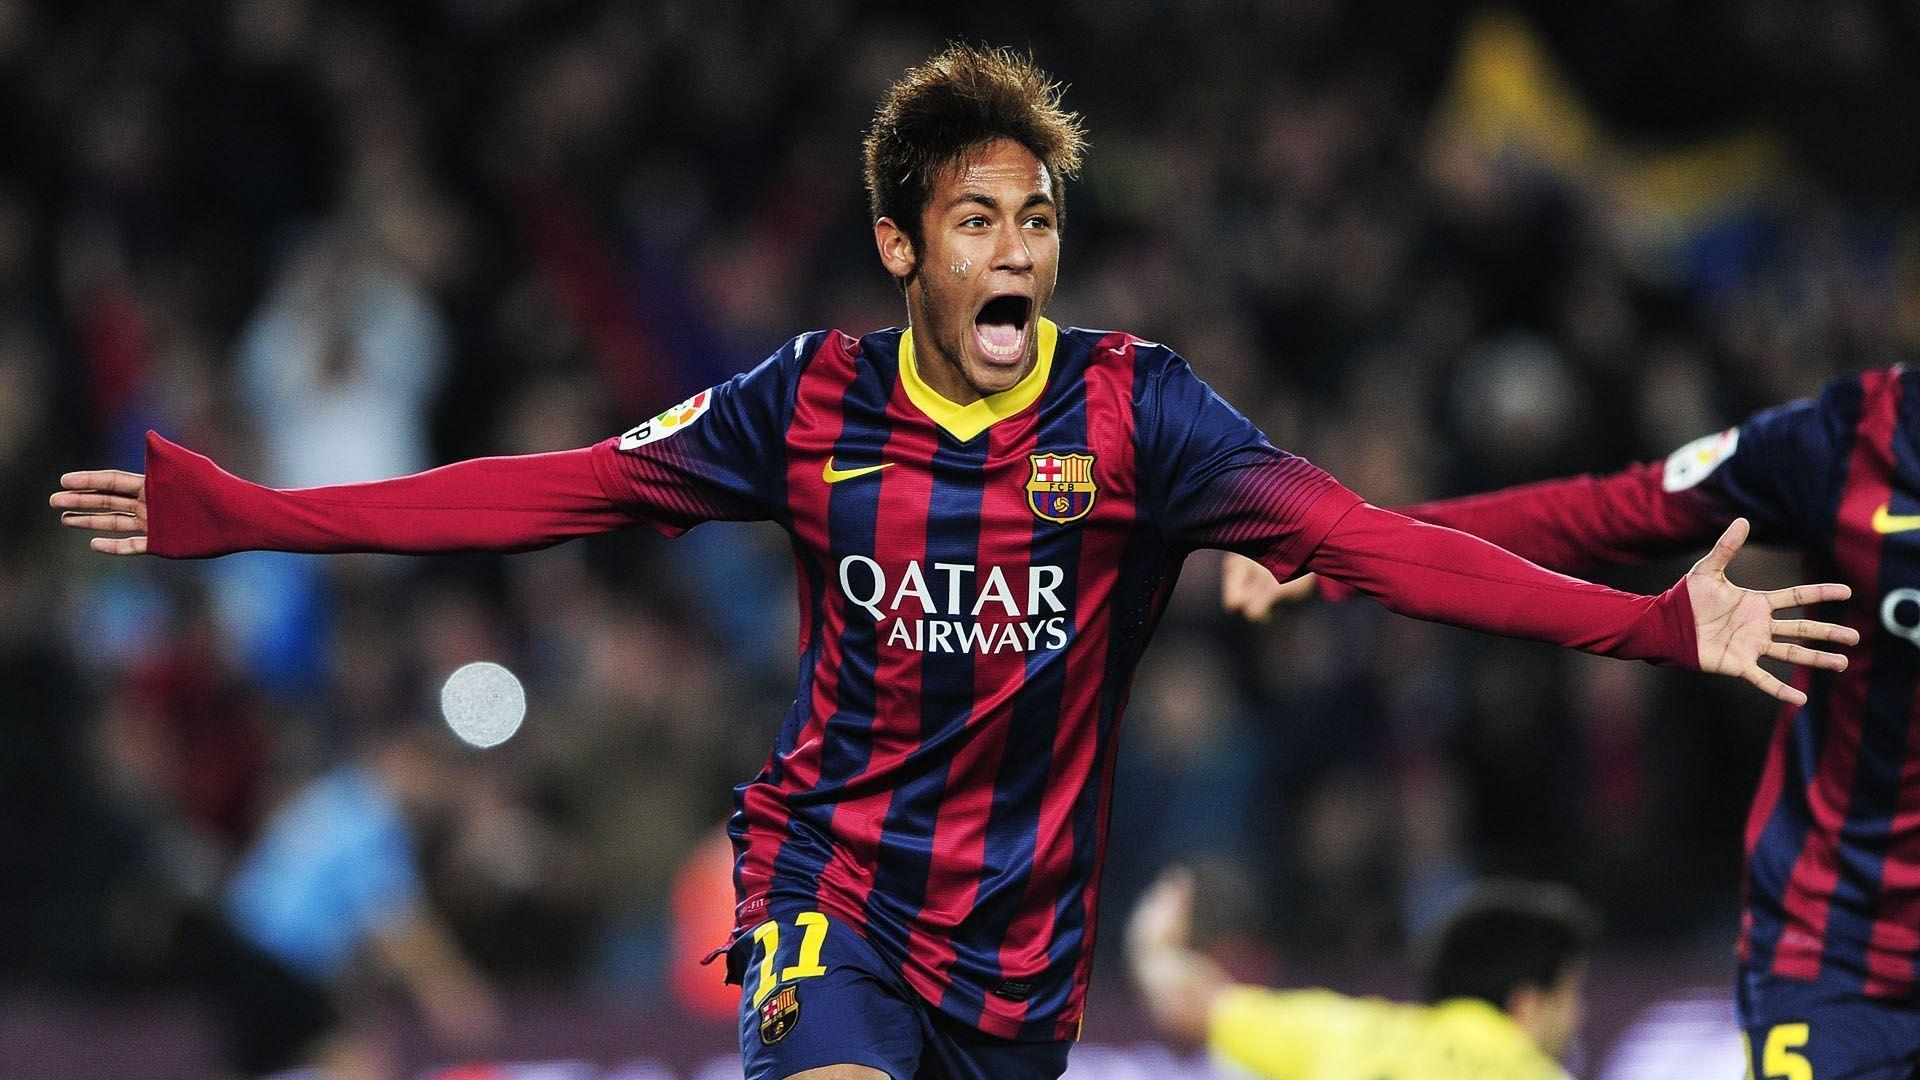 Neymar Jr Wallpapers 2015 · Neymar Wallpapers